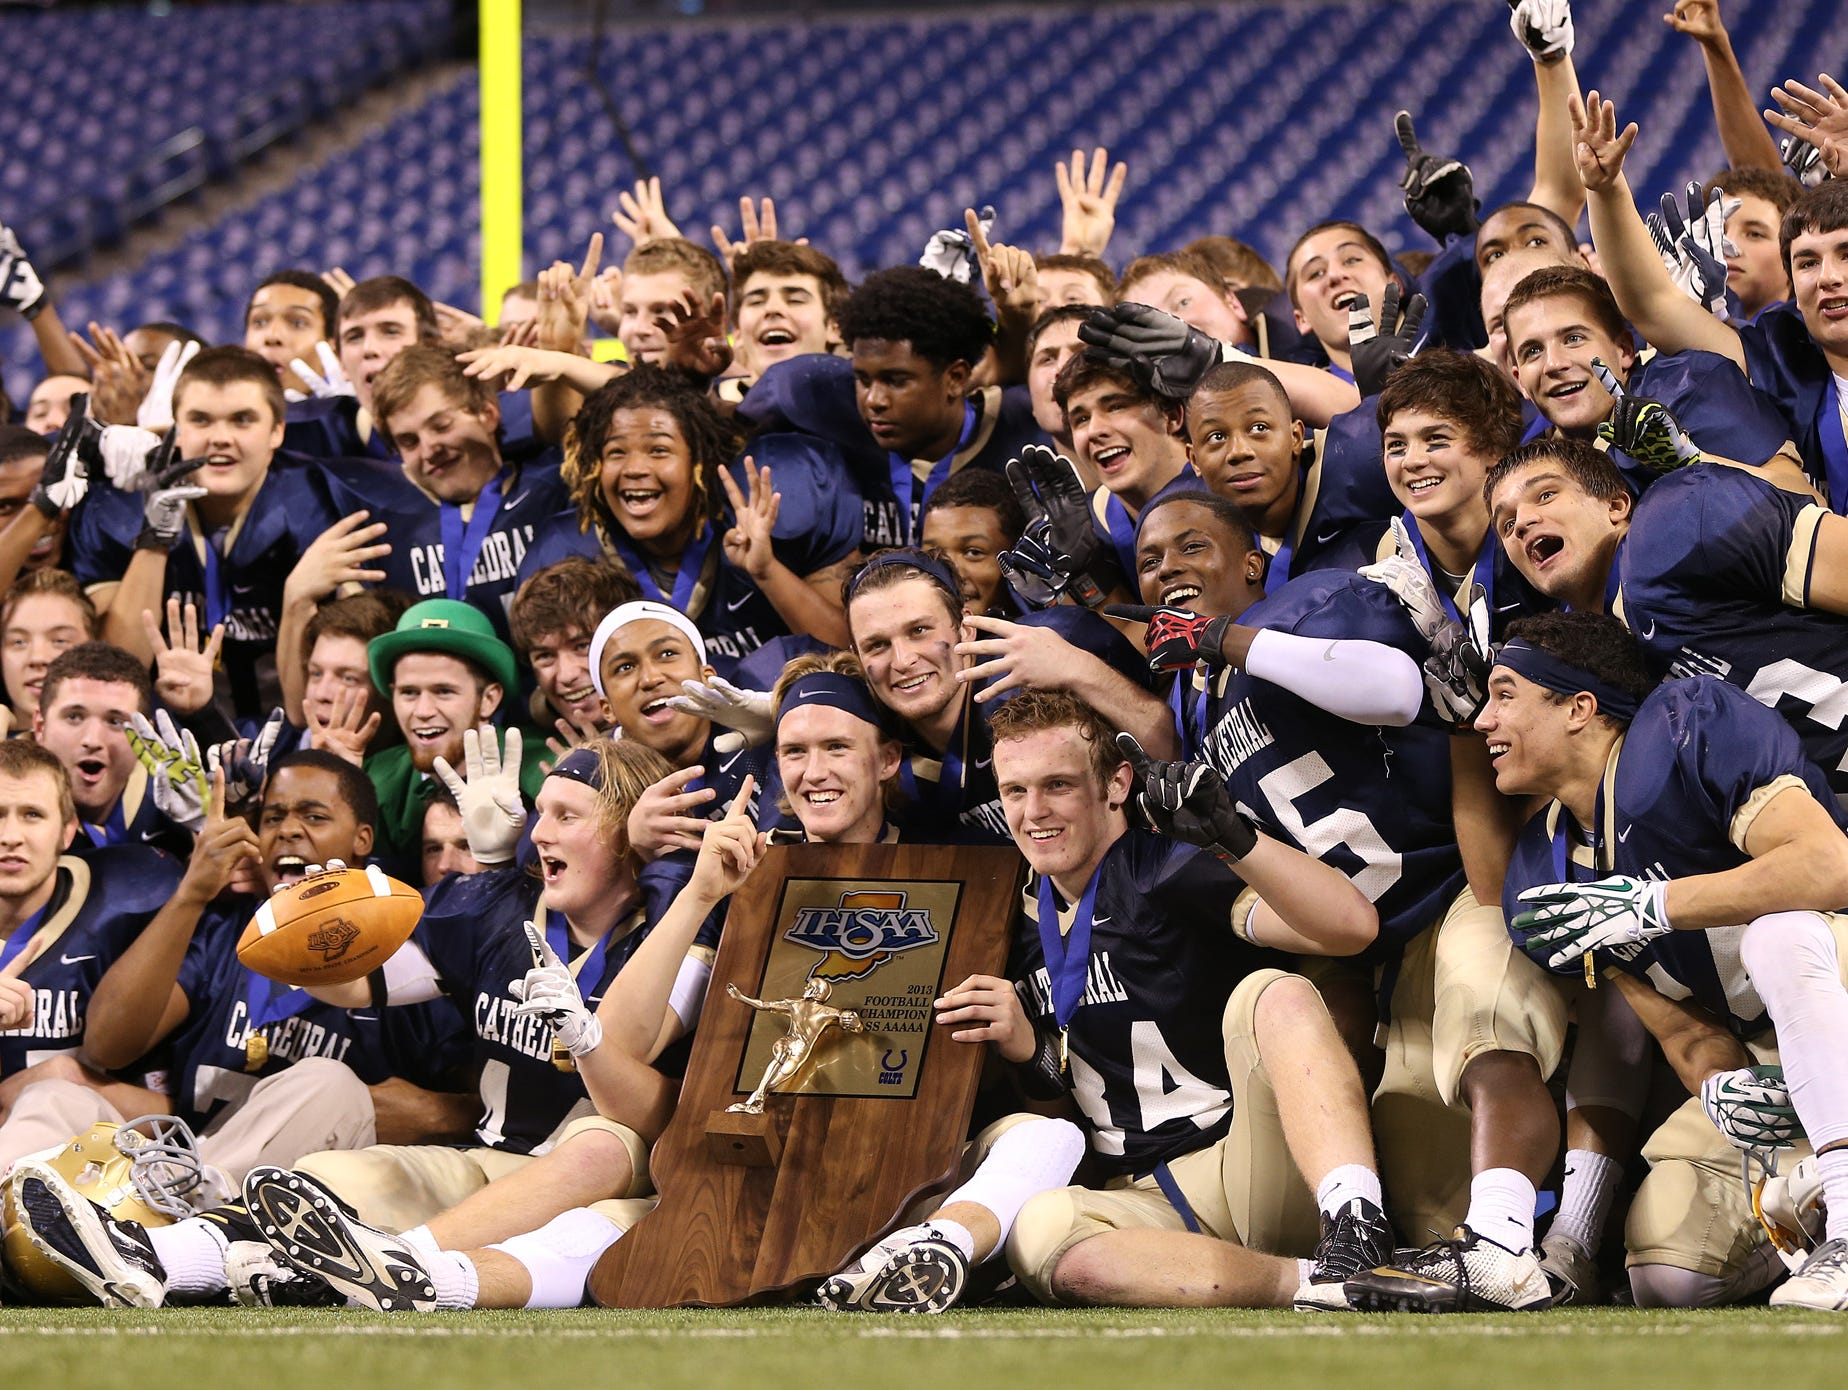 Can Cathedral repeat in Class 5A?